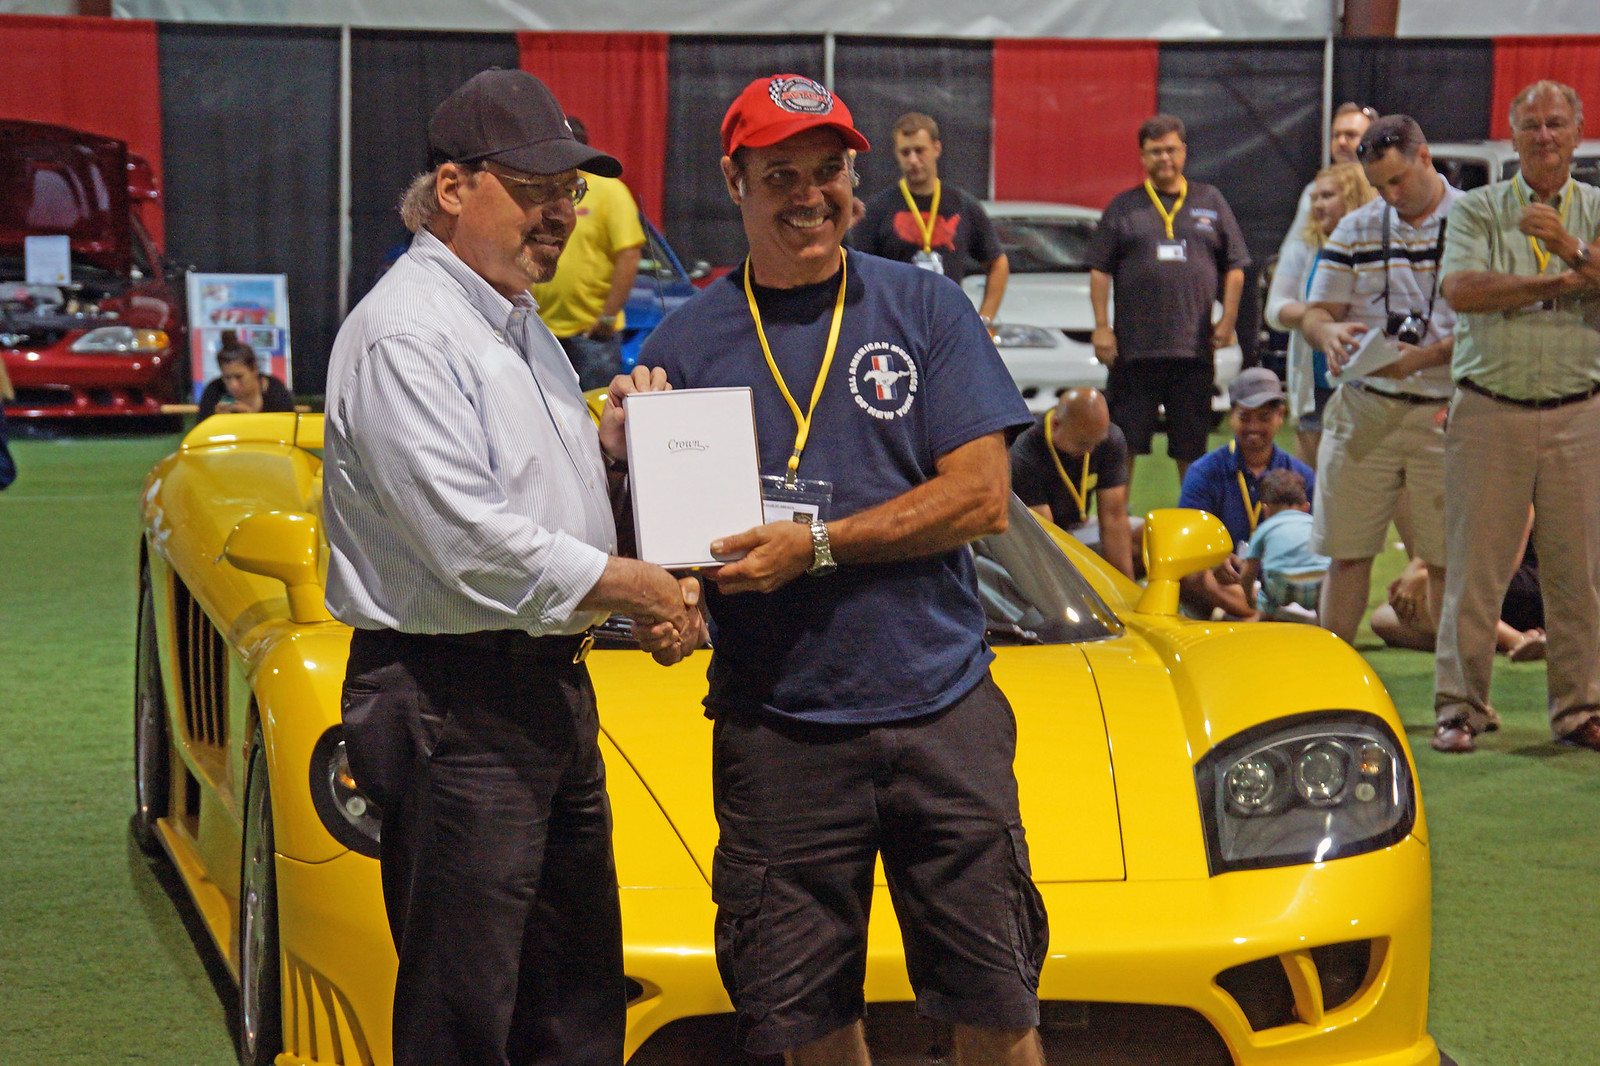 Saleen Nationals 2014 pictures 14809798681_f1f259a100_h